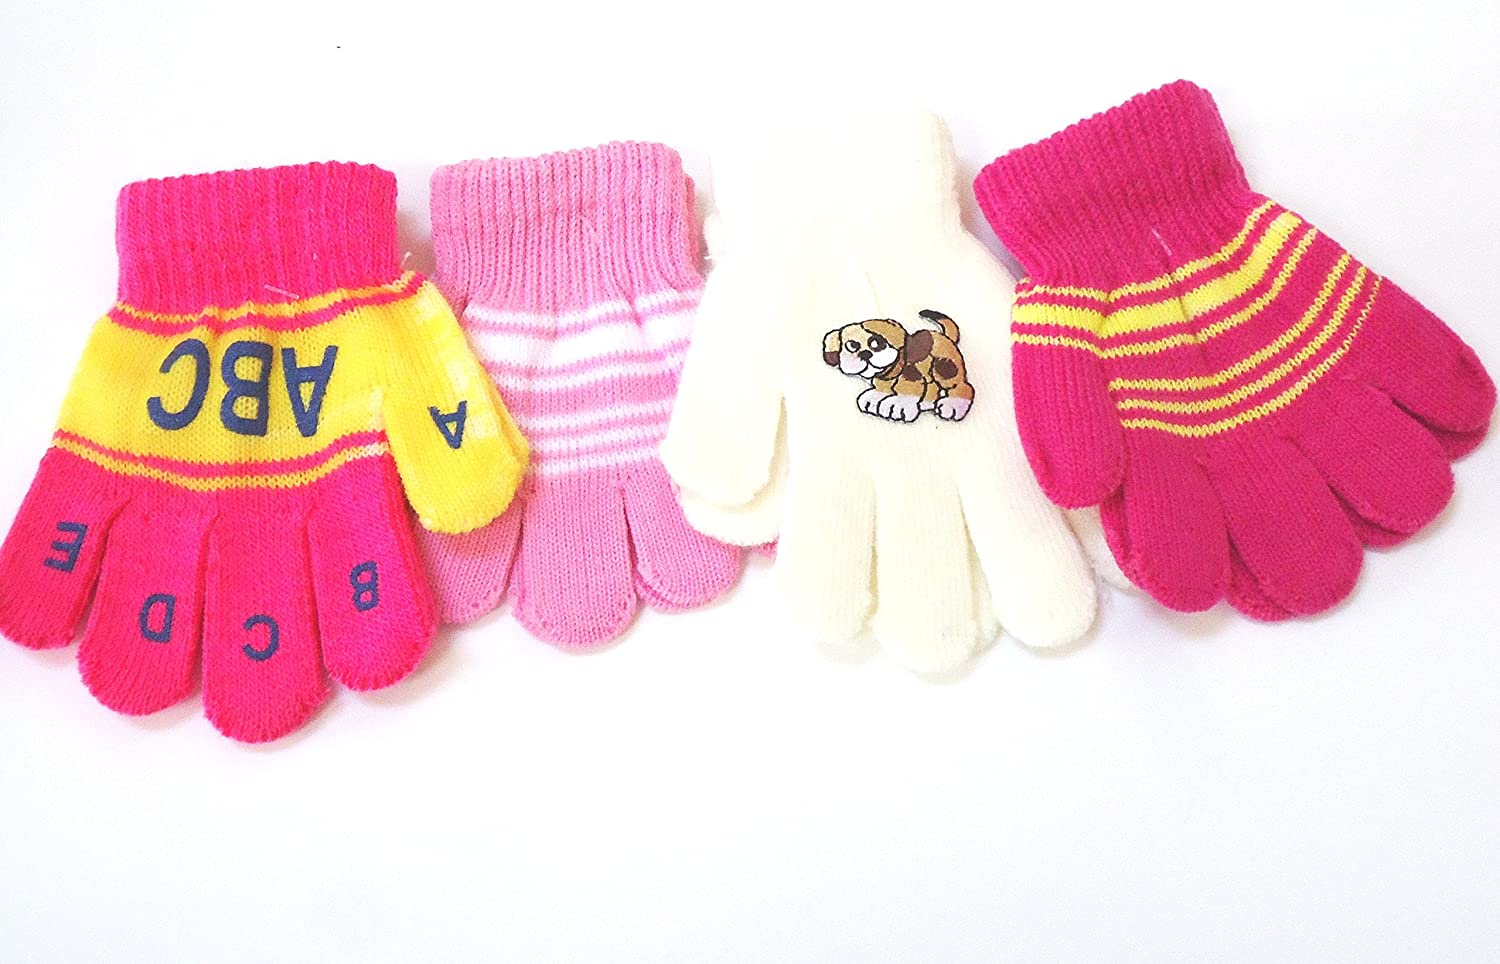 Four Pairs Stretch Sona Magic Gloves for Ages 1-3 Years